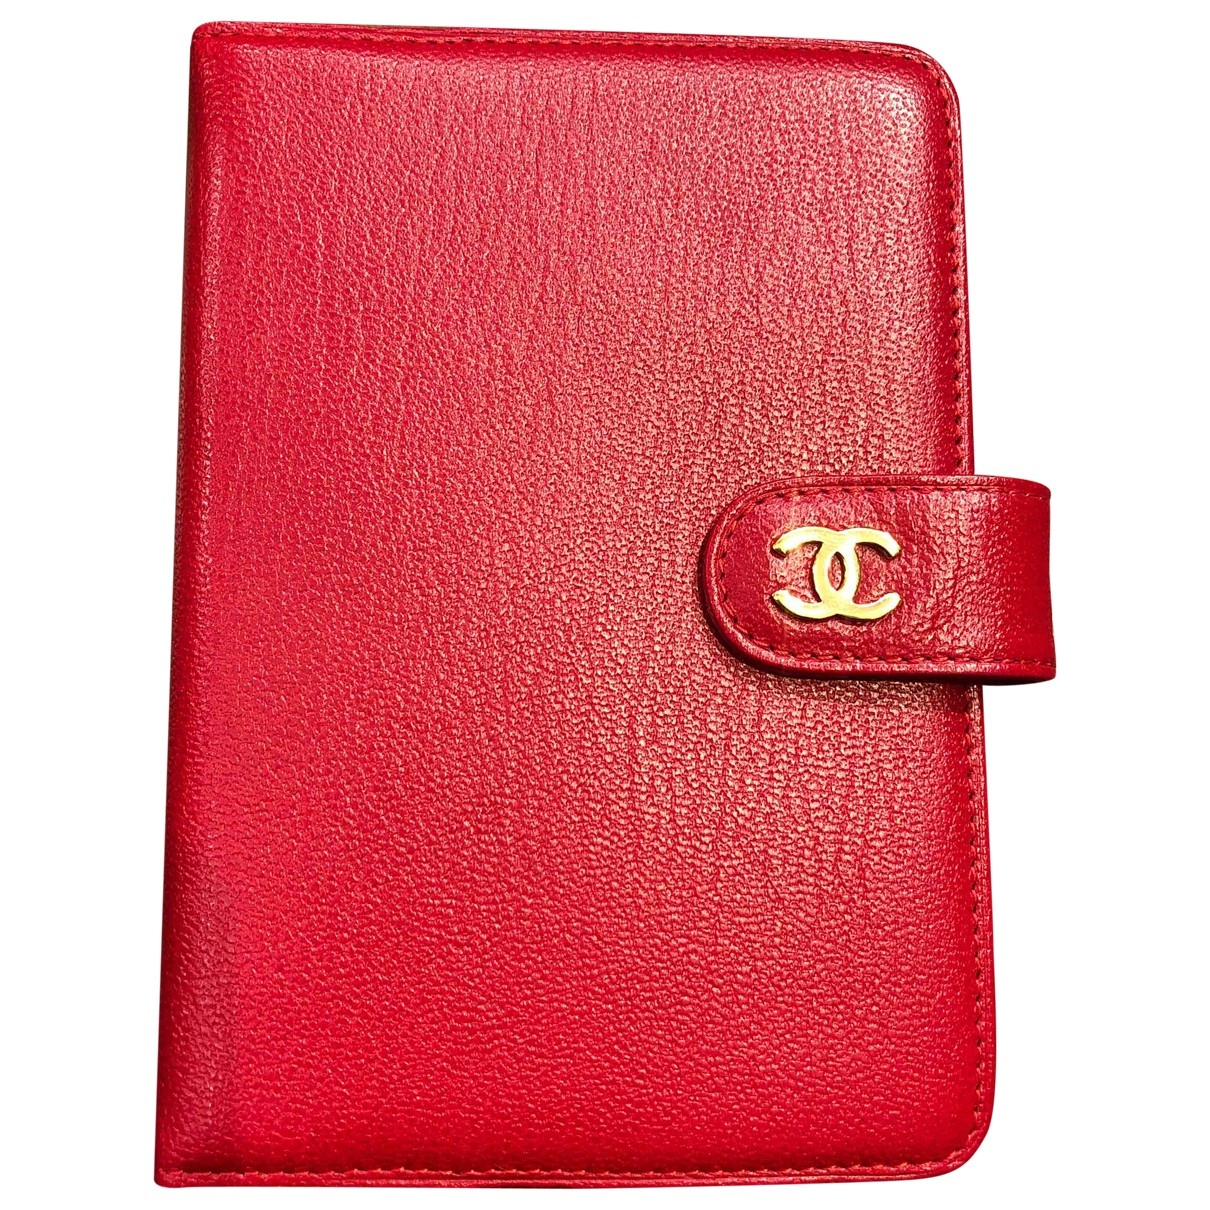 Chanel Timeless/Classique Red Leather Home decor for Life & Living \N